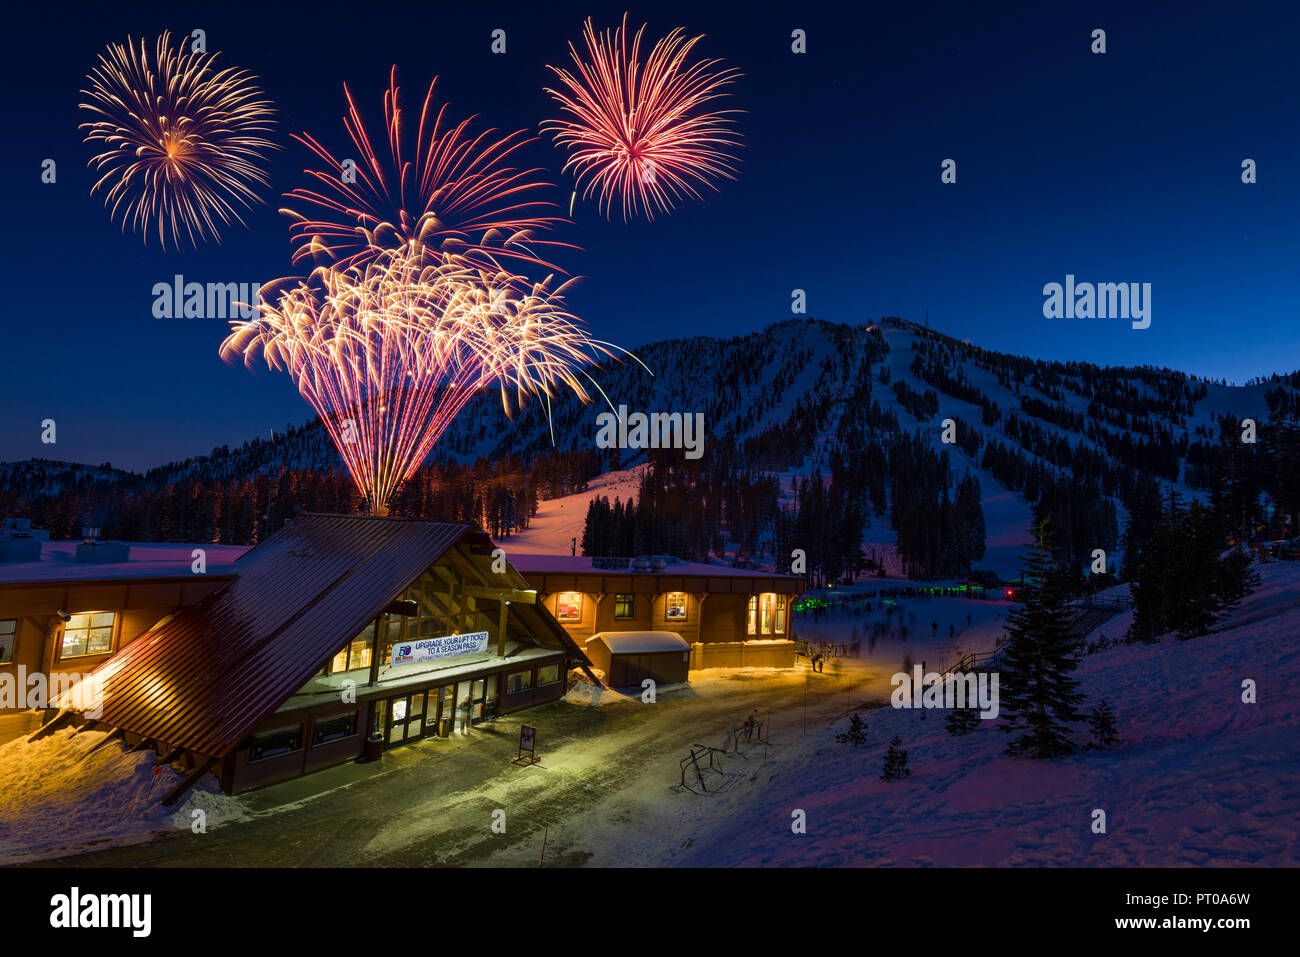 2014 New Year's eve fireworks at mt rose ski tahoe ski resort near Reno, Nev., Dec. 31, 2014.(Scott Sady/TahoeLight.com) Stock Photo